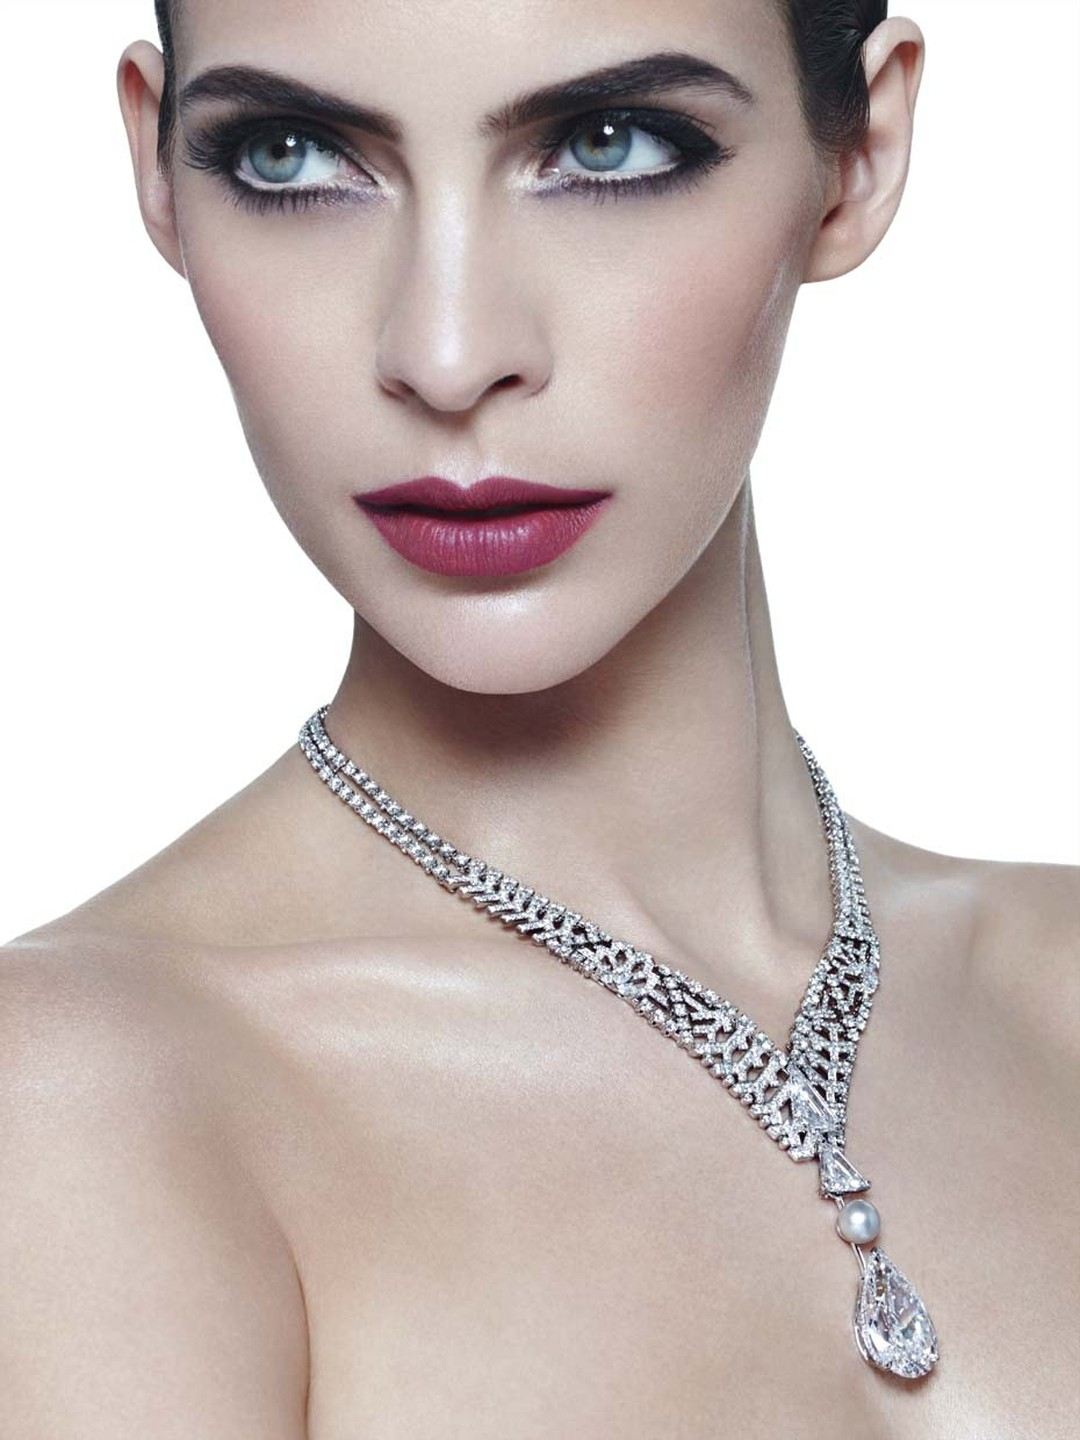 Cartier's Royal collection necklace not only features a flawless diamond but is also adorned with an openwork lattice of diamonds on the necklace which moves down the neck in a V-shape arrangement to converge in a 5.12ct kite-shaped diamond. Beyond the la